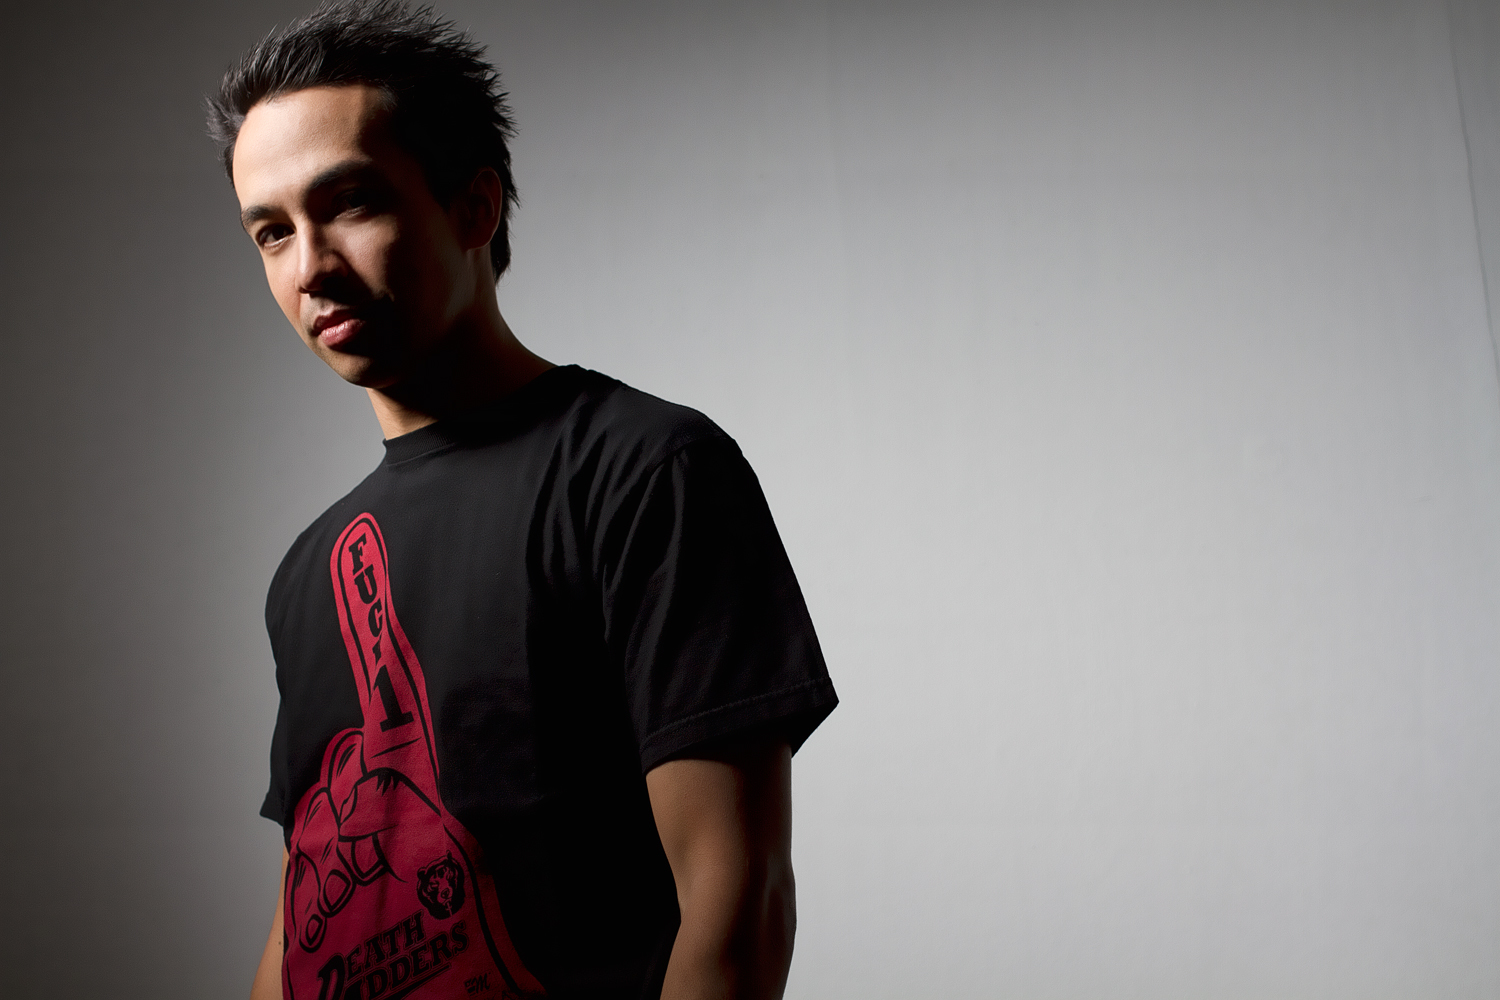 Laidback Luke High Definition Wallpapers